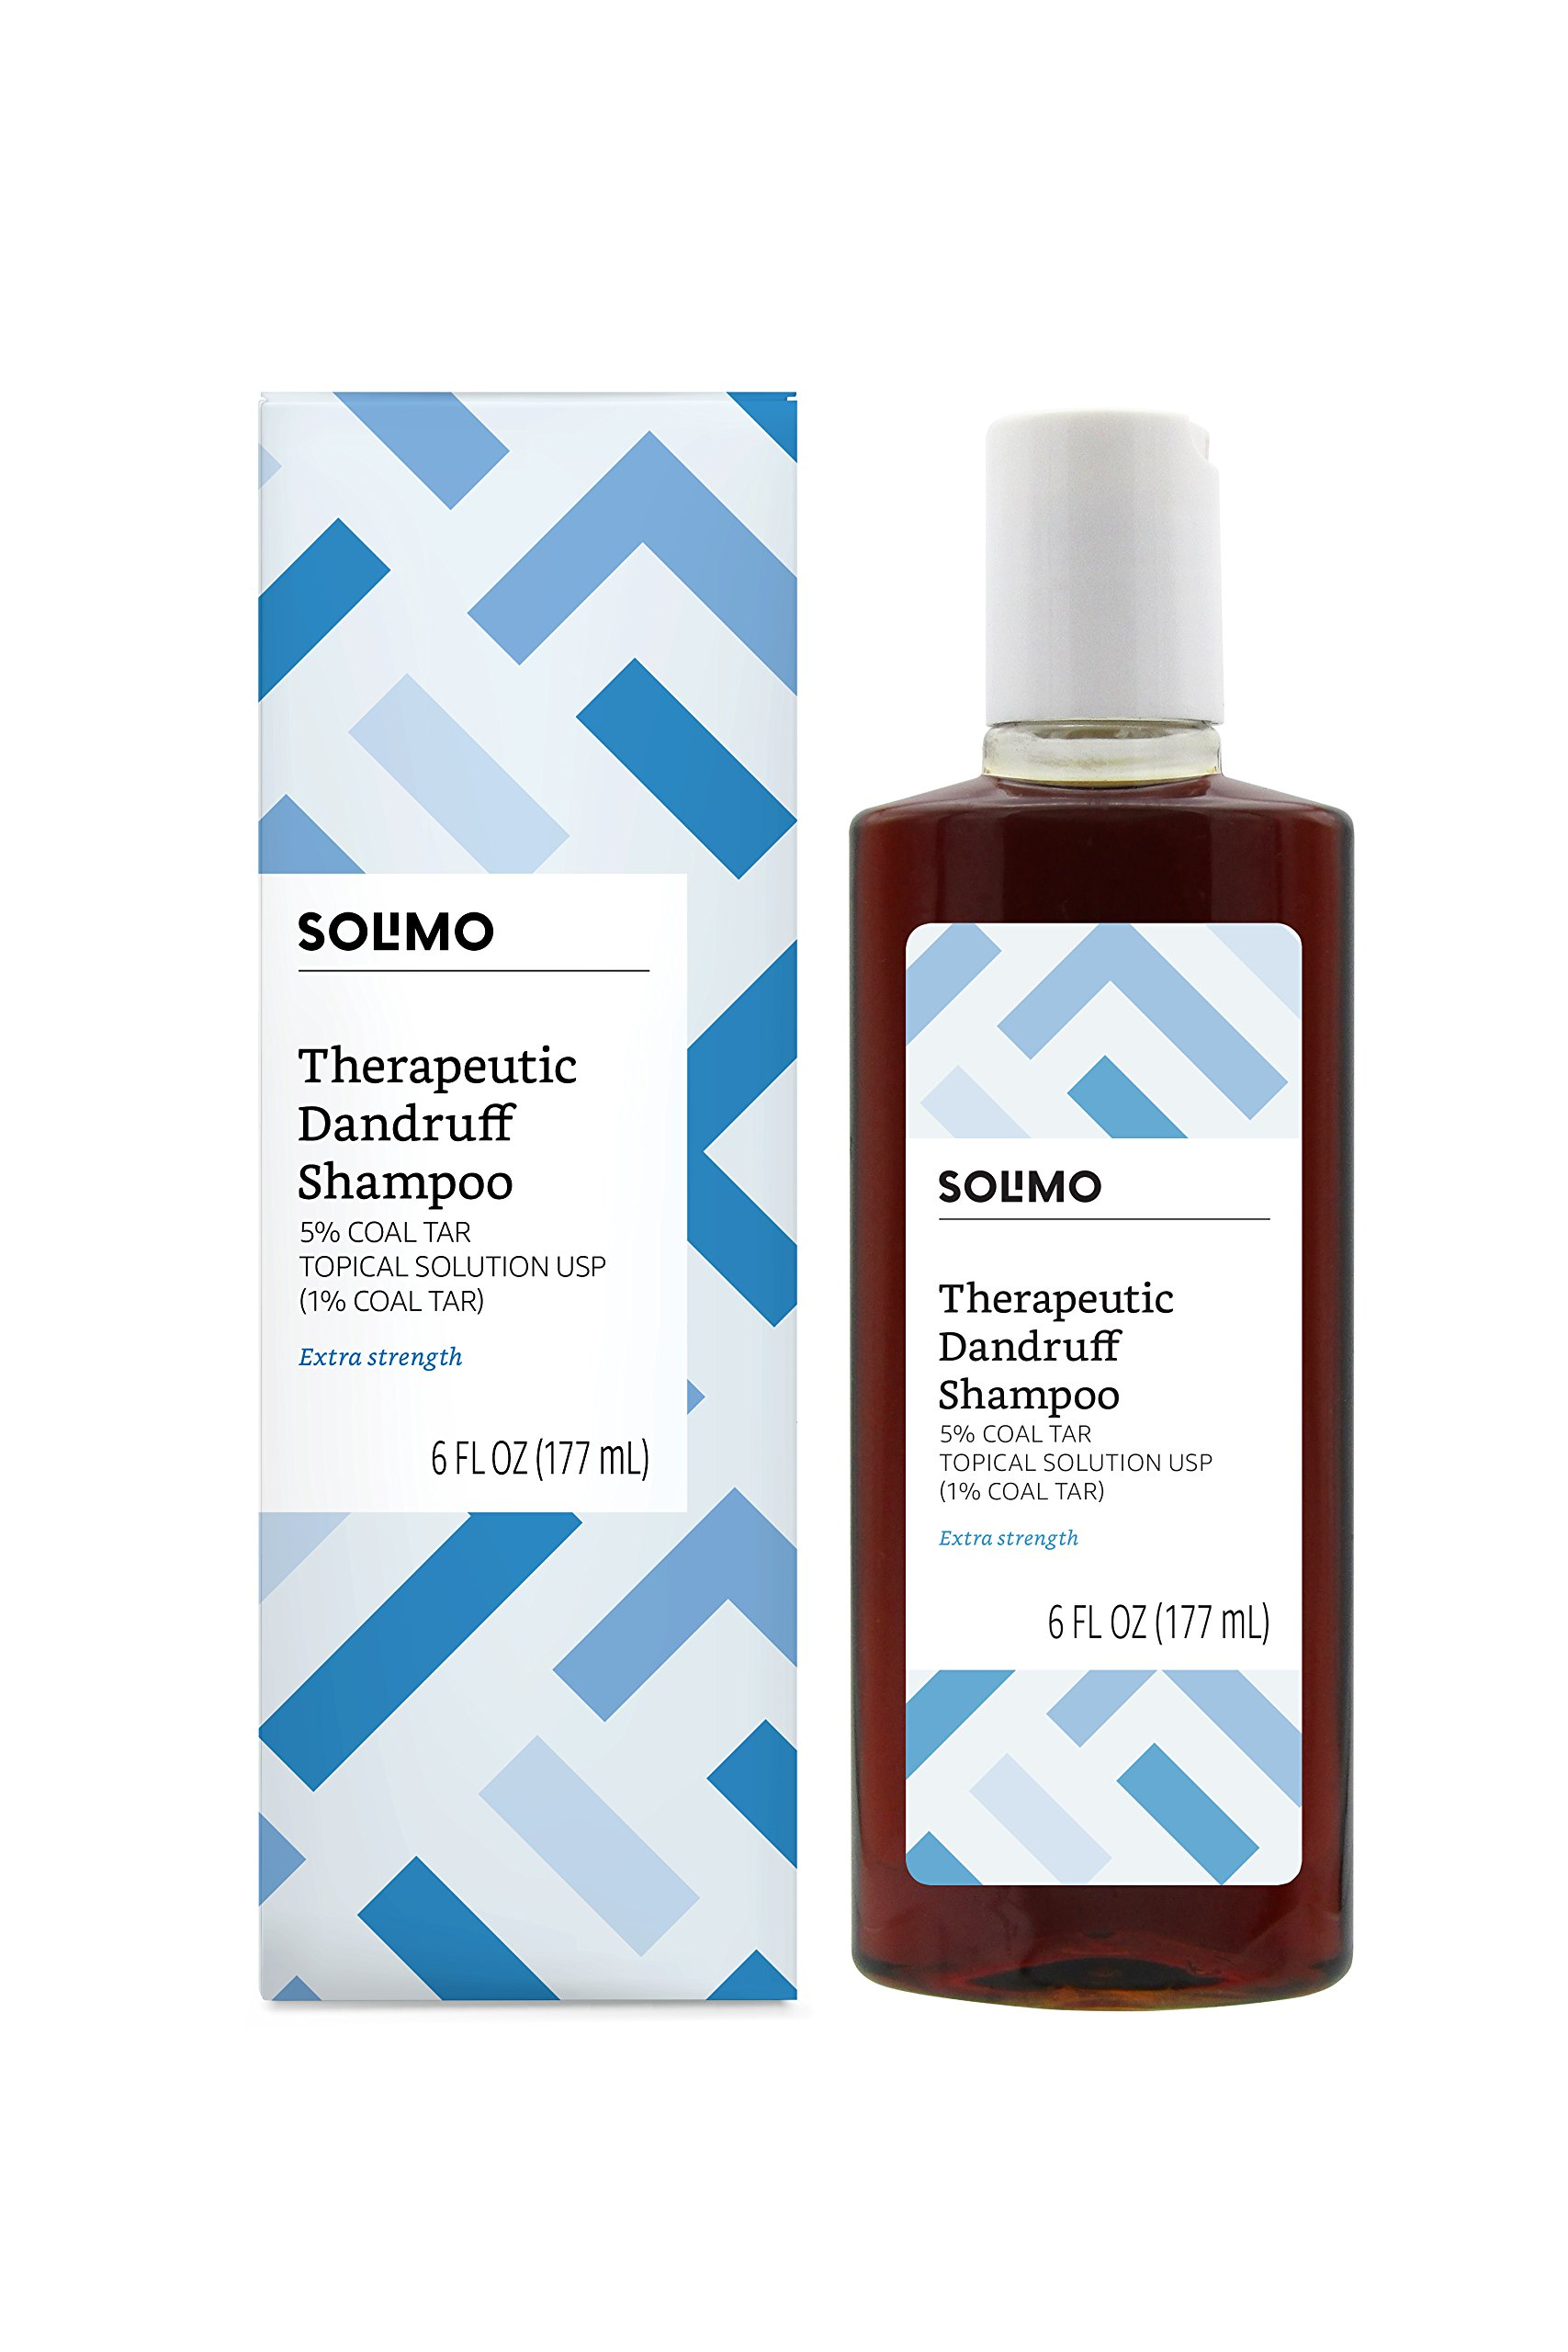 Amazon Brand - Solimo Therapeutic Dandruff Shampoo, Extra Strength, 6 fl oz